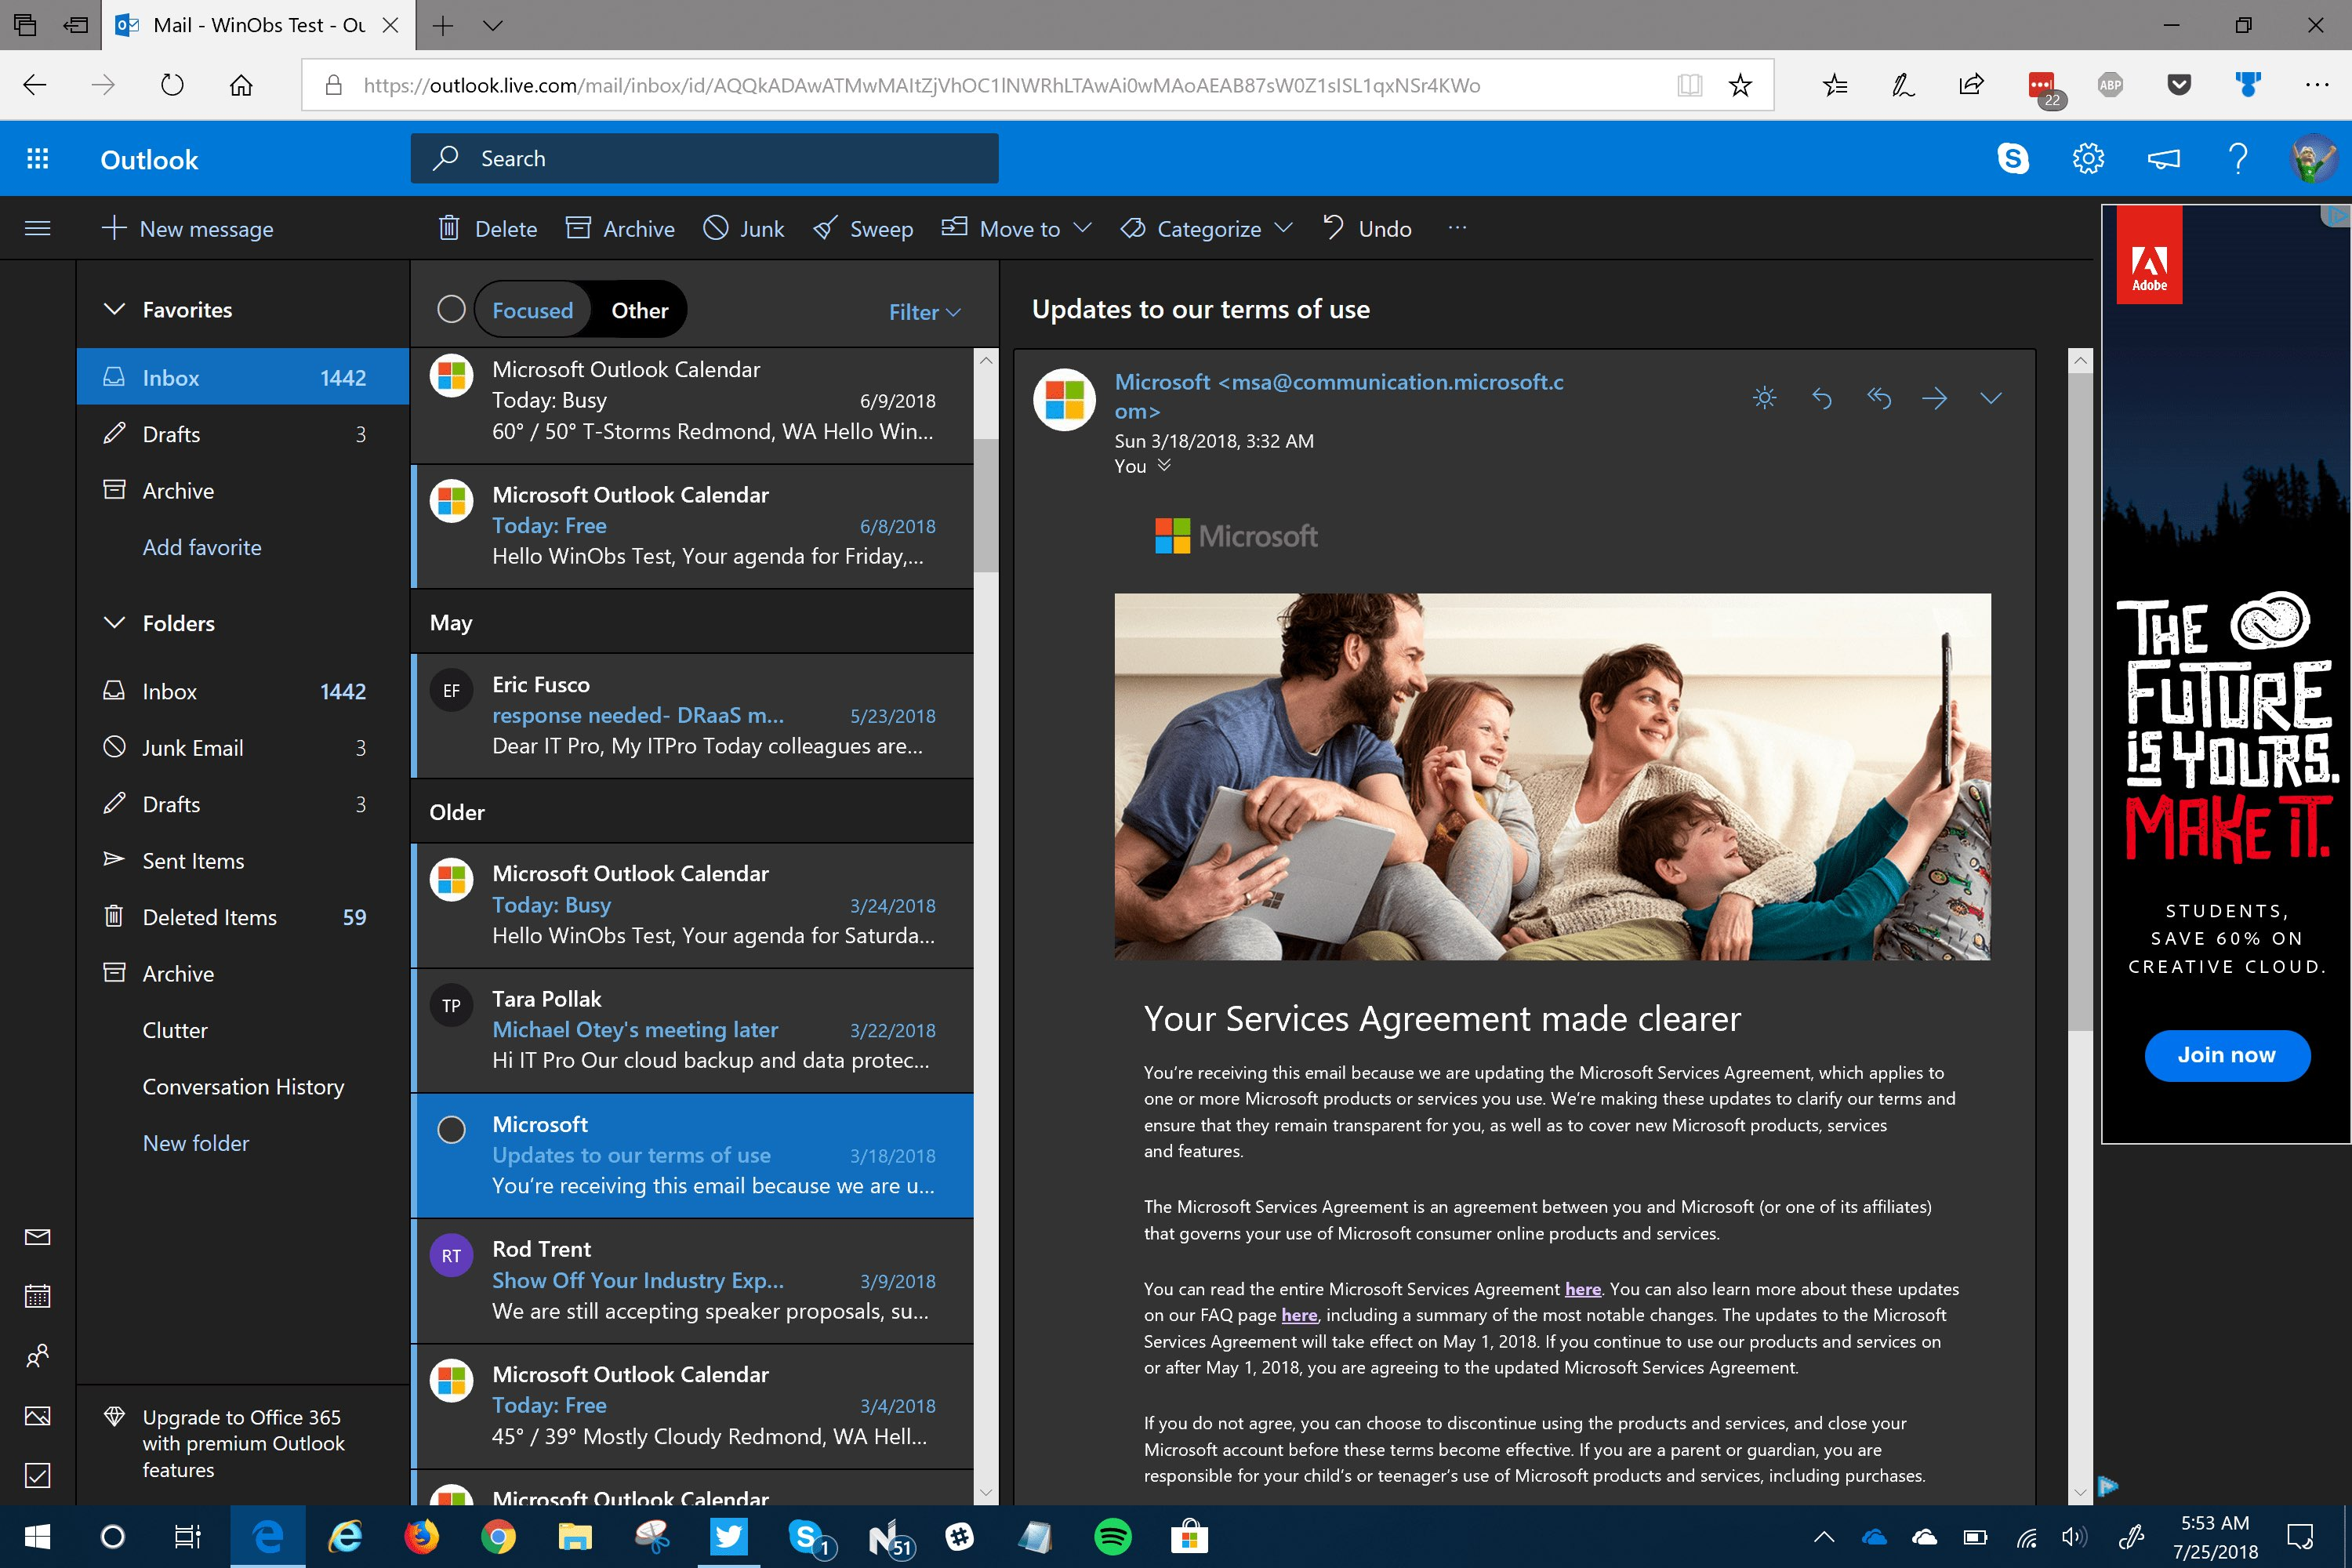 How to enabled Dark Mode on Outlook com